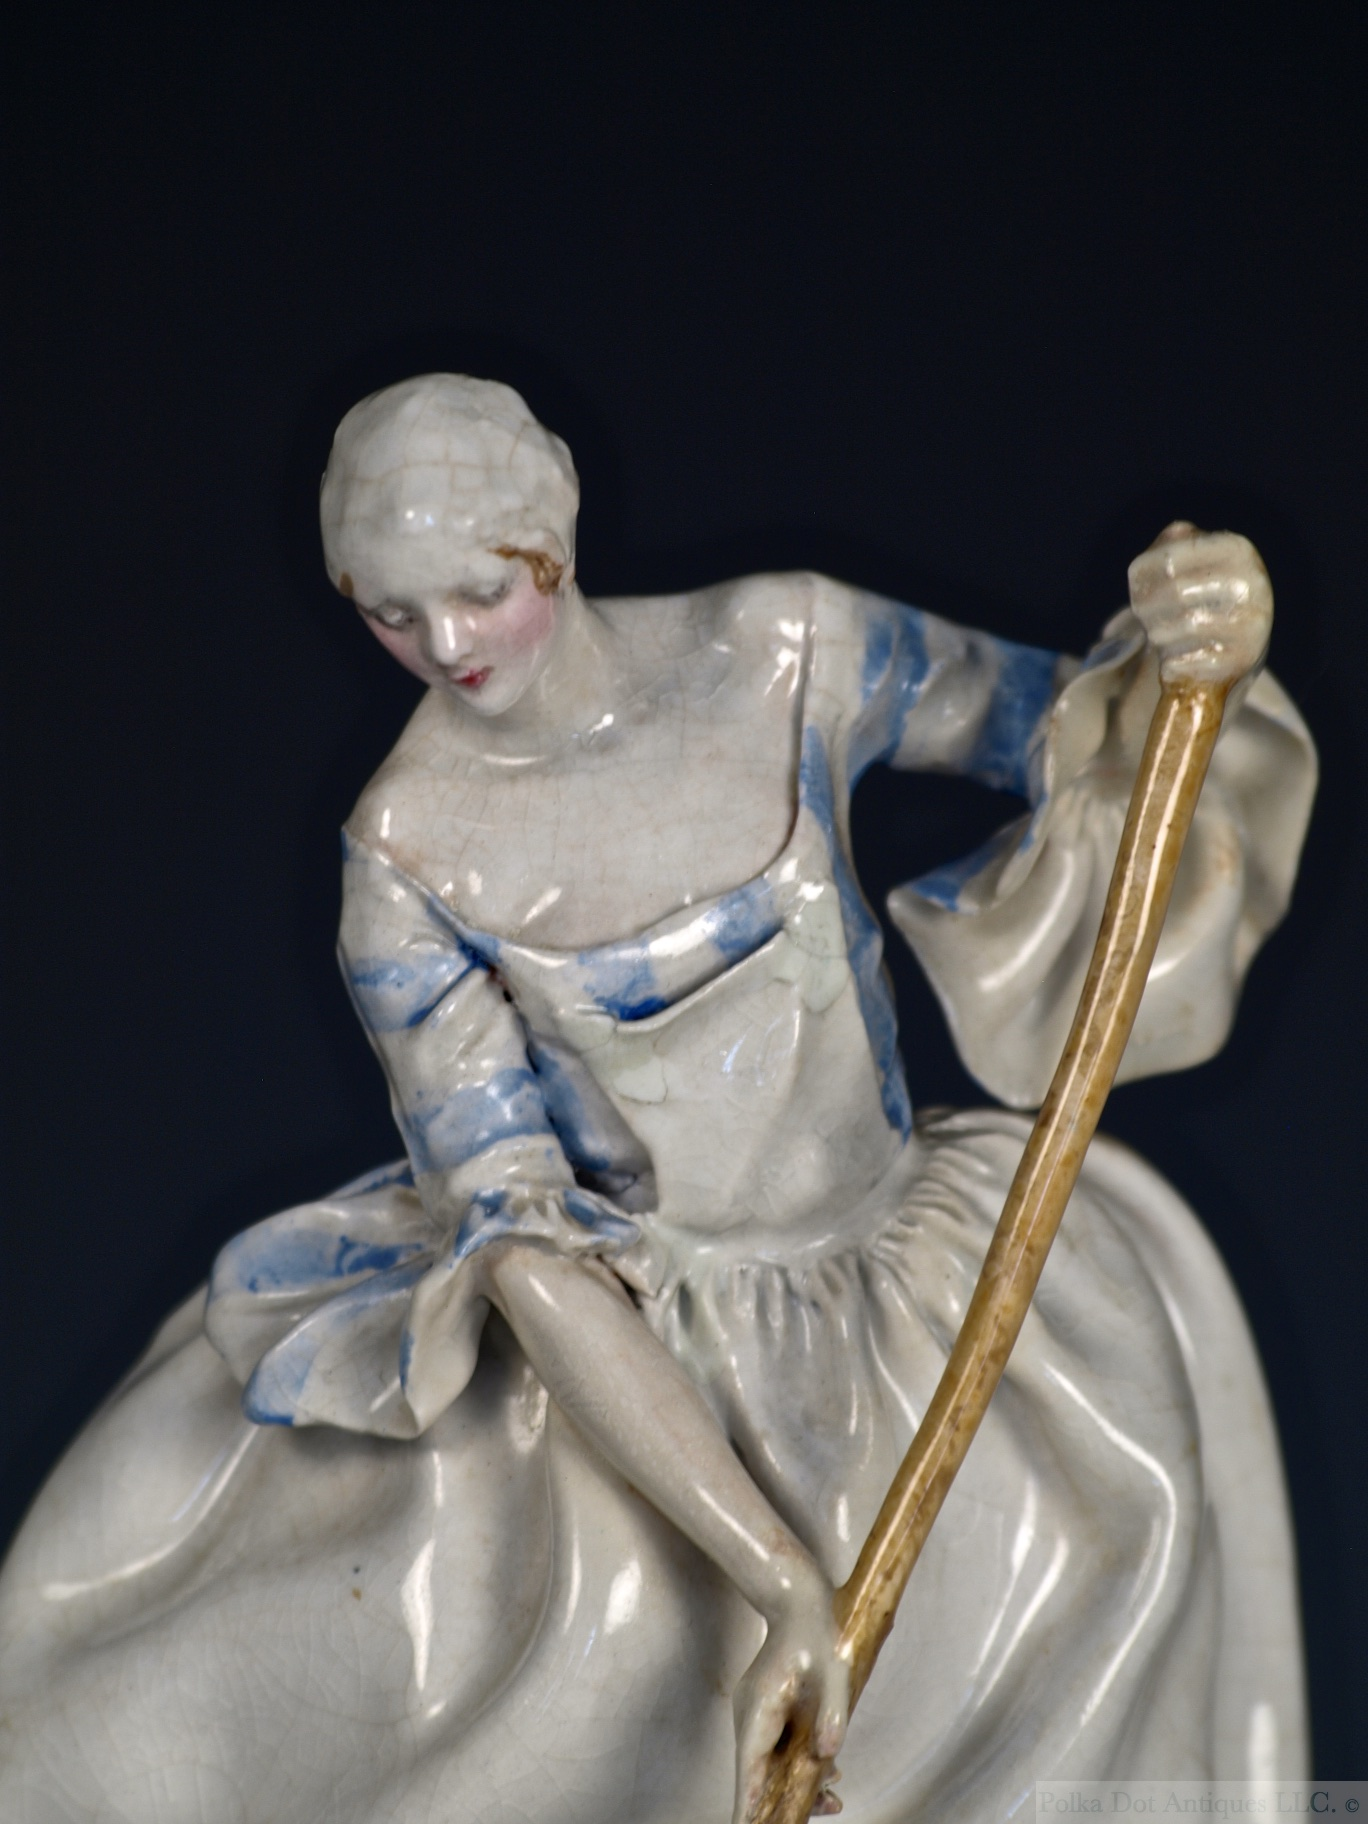 rw1258 G. Parnell Sweeping Figure - 03.jpg